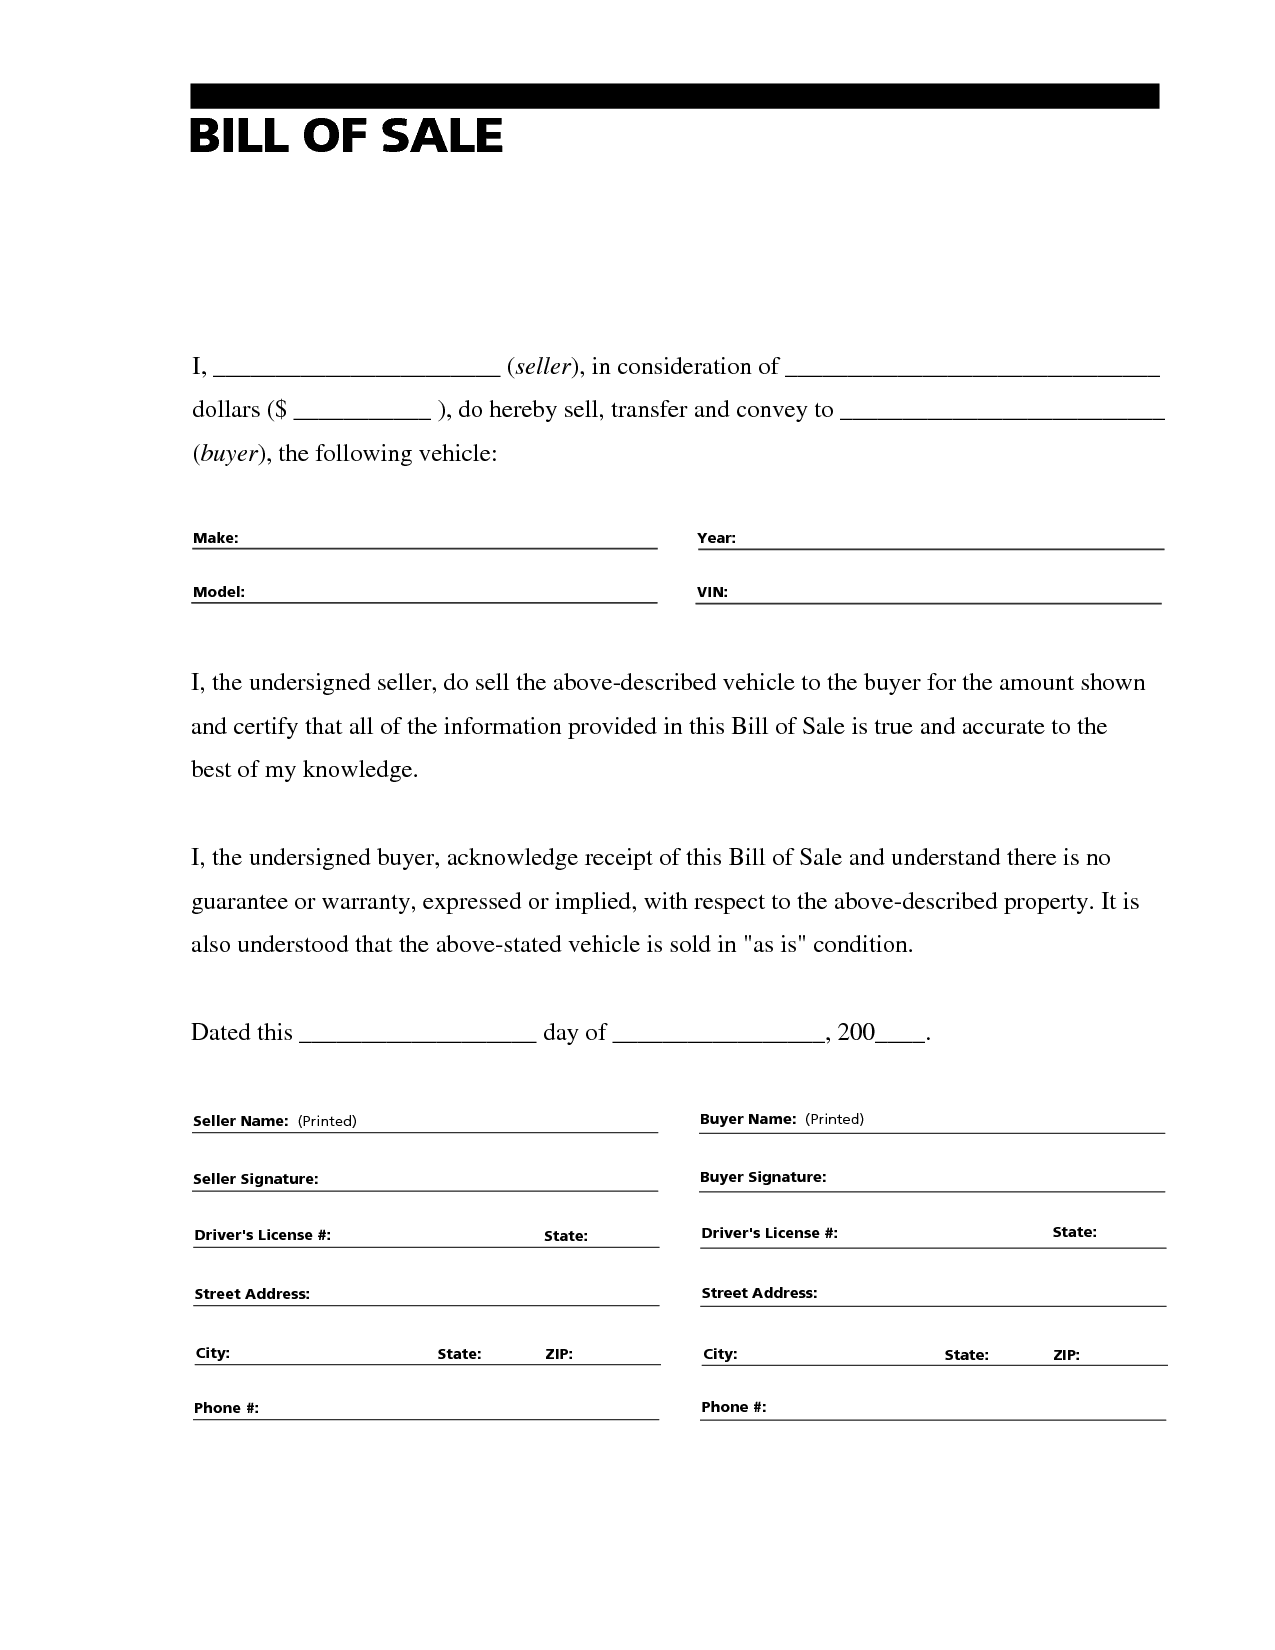 Printable Sample Bill Of Sale Templates Form  Free Legal Forms